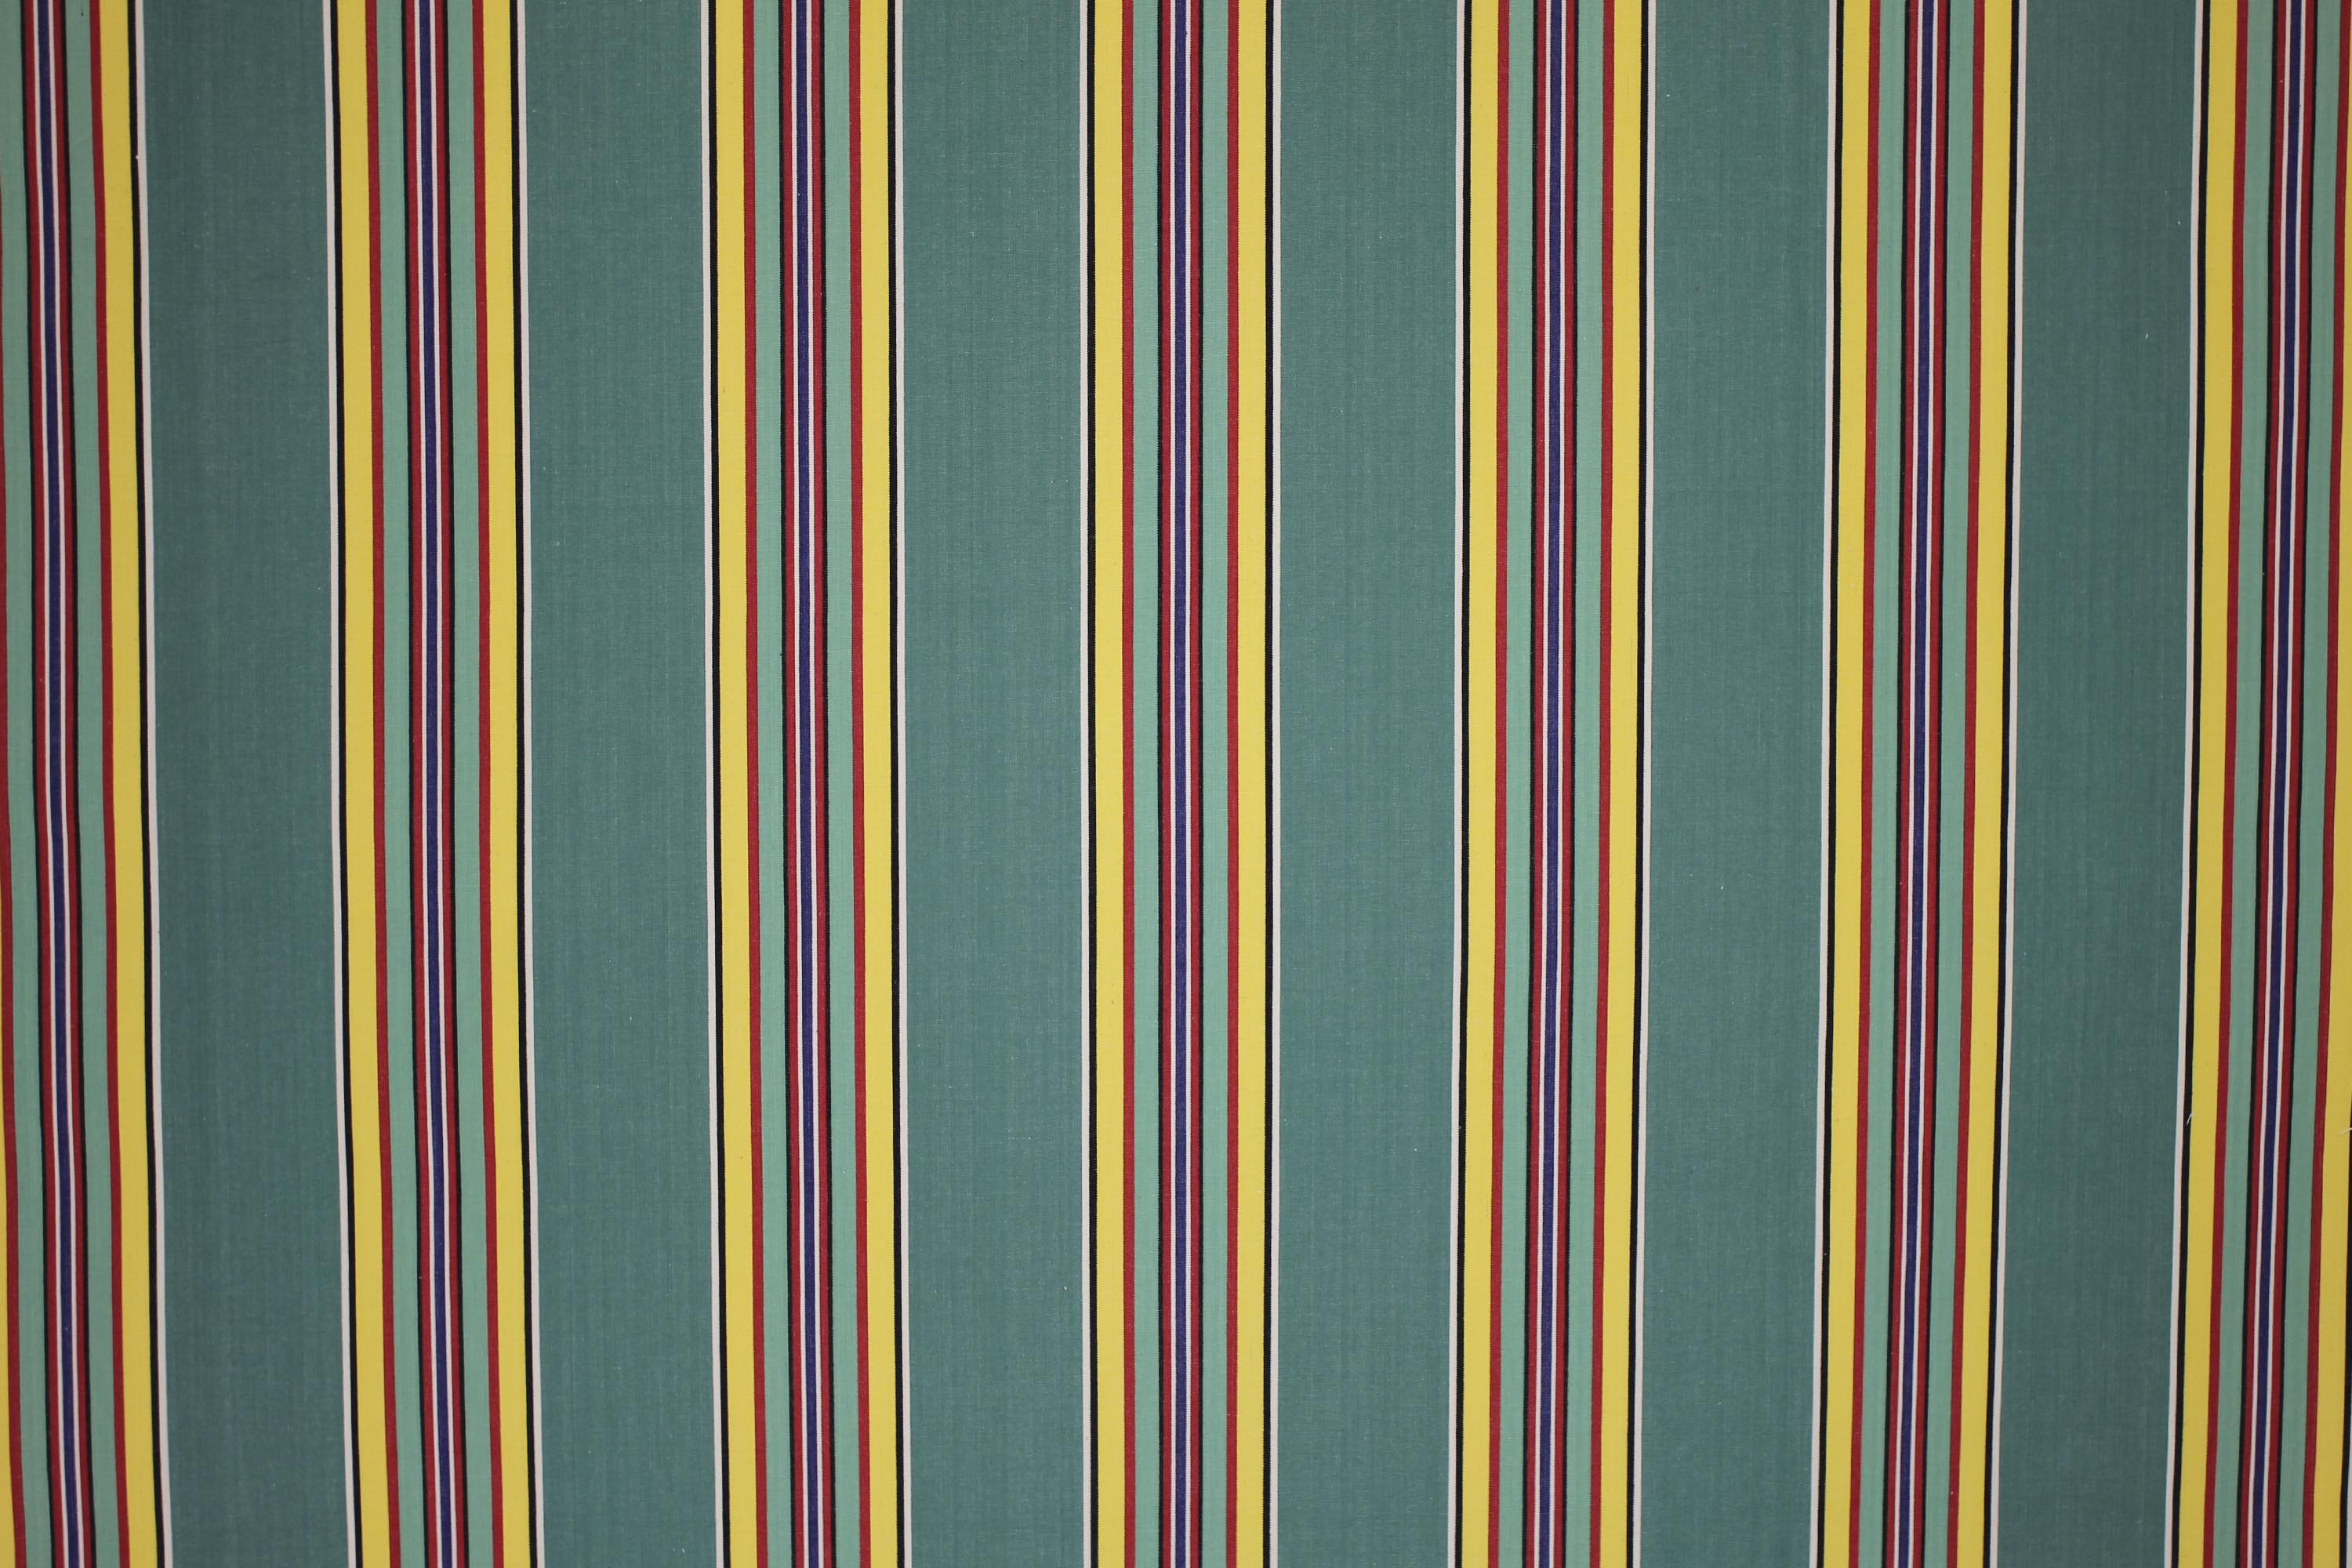 Golf Retro Green Striped Fabric